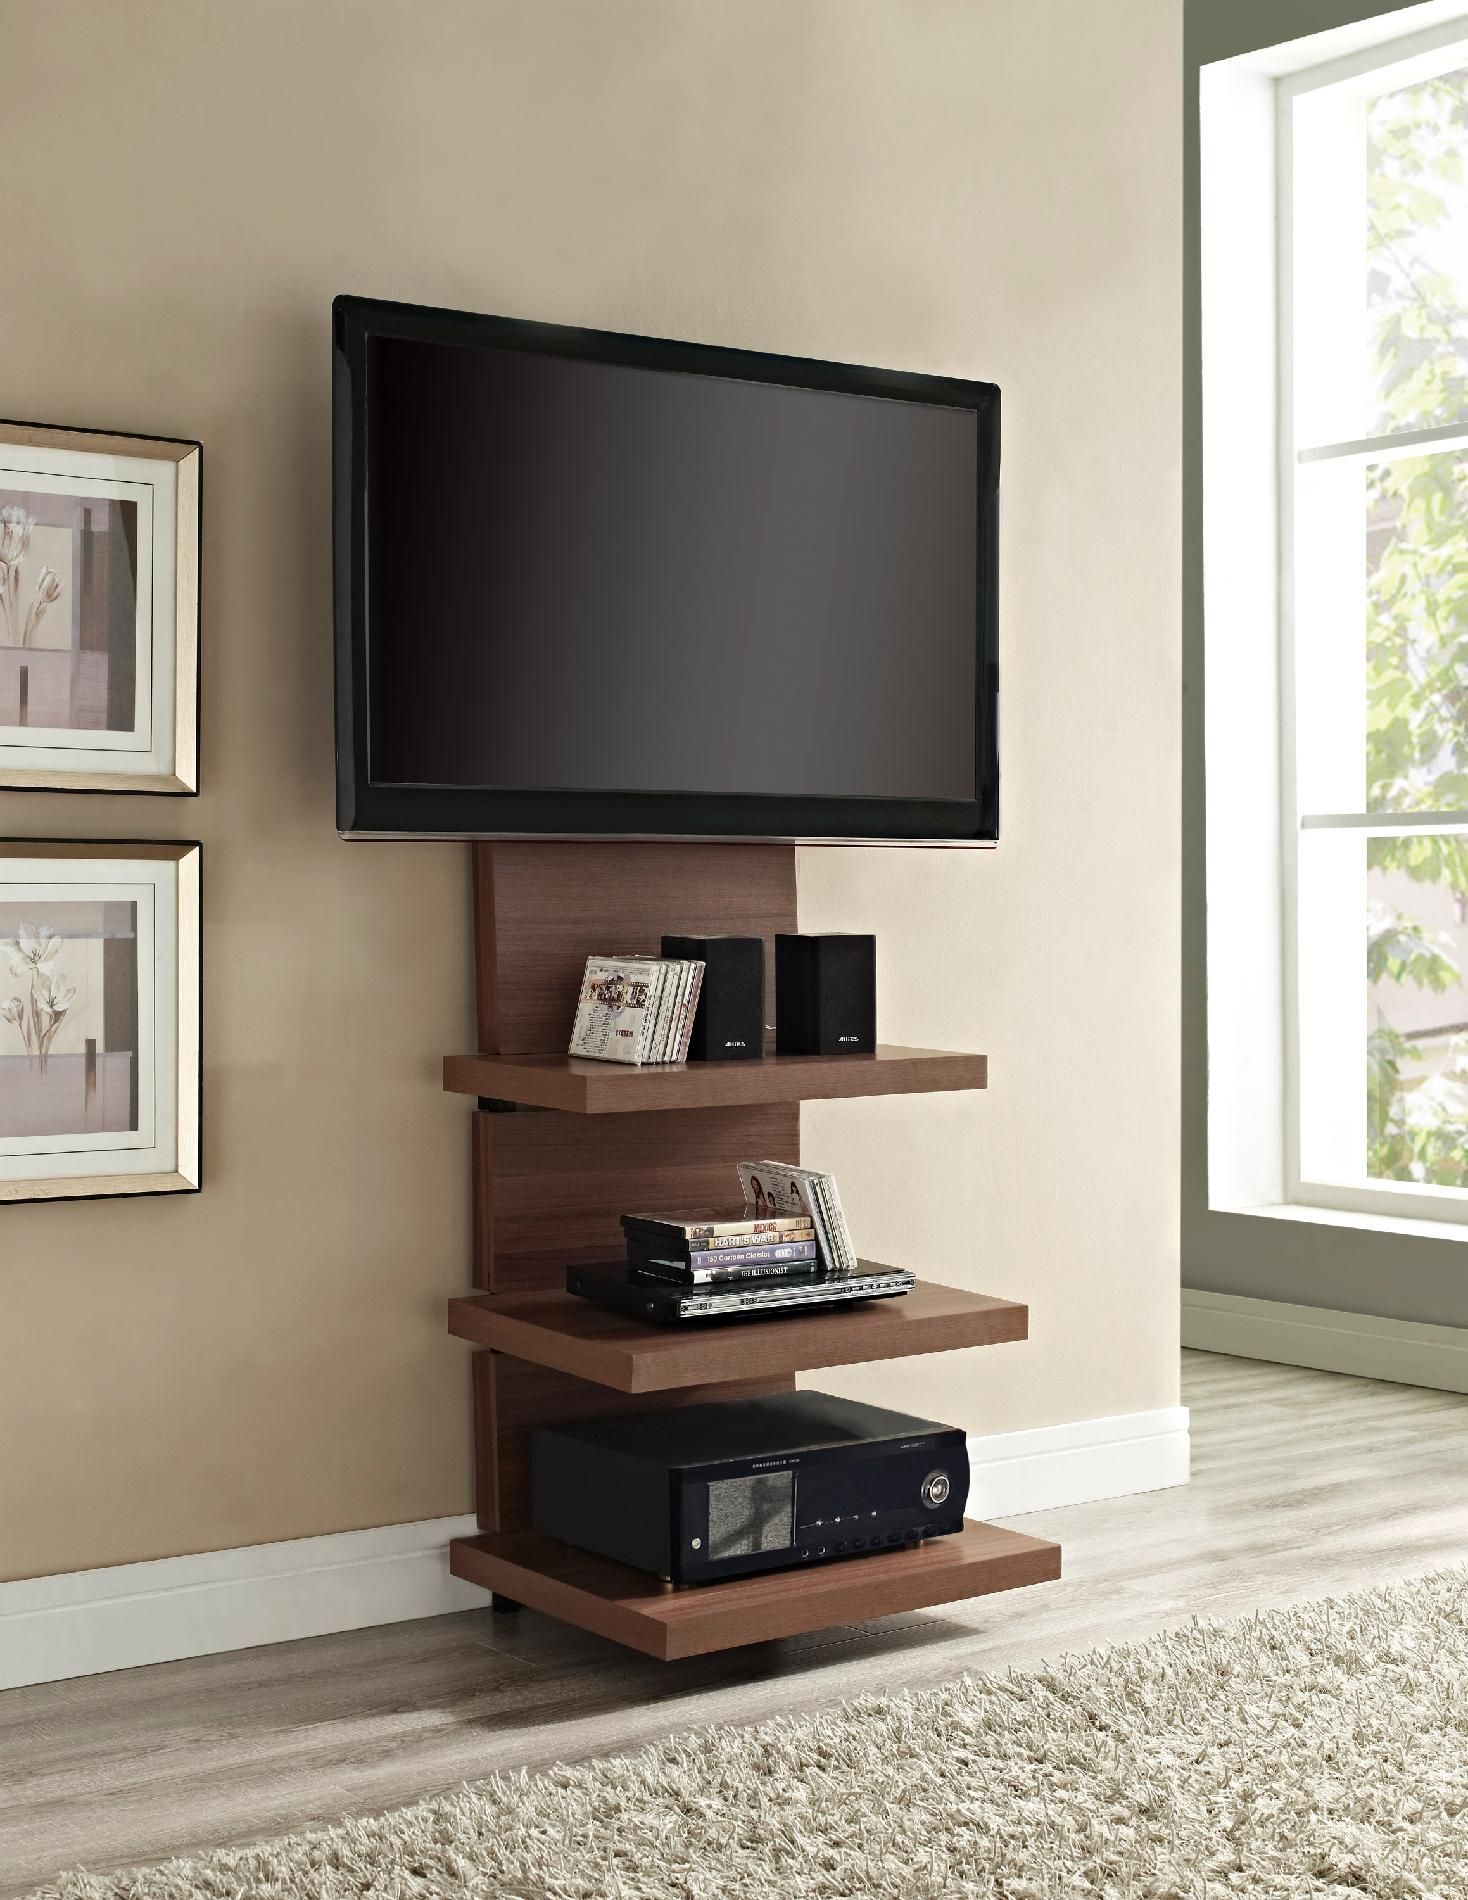 18 chic and modern tv wall mount ideas for living room Wall tv console design